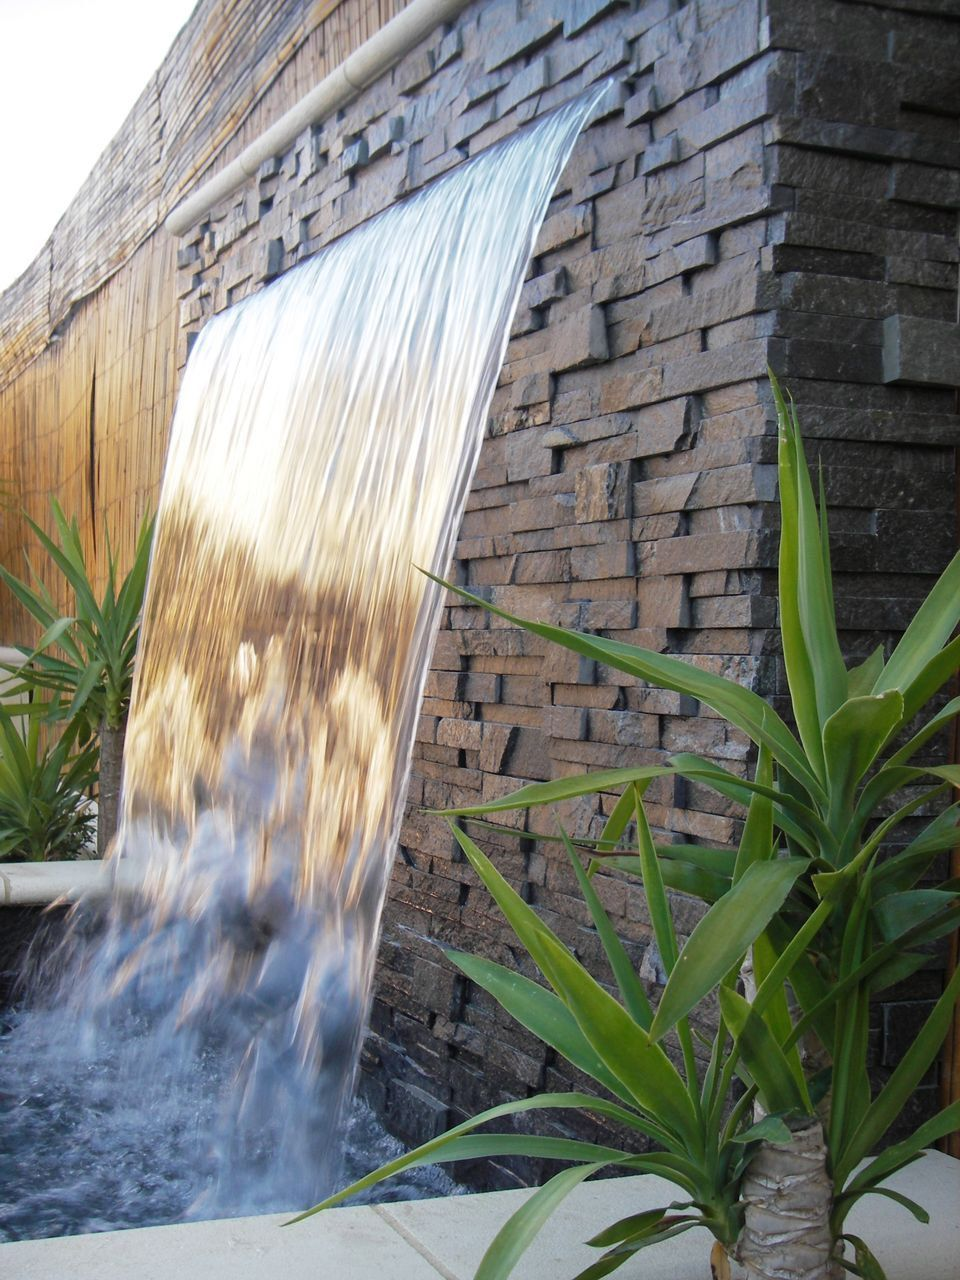 Water Features For Backyard Features Wall Features Sheer Descent Features And Even The B Water Fountains Outdoor Waterfalls Backyard Outdoor Wall Fountains Minimalist modern outdoor water wall fountain